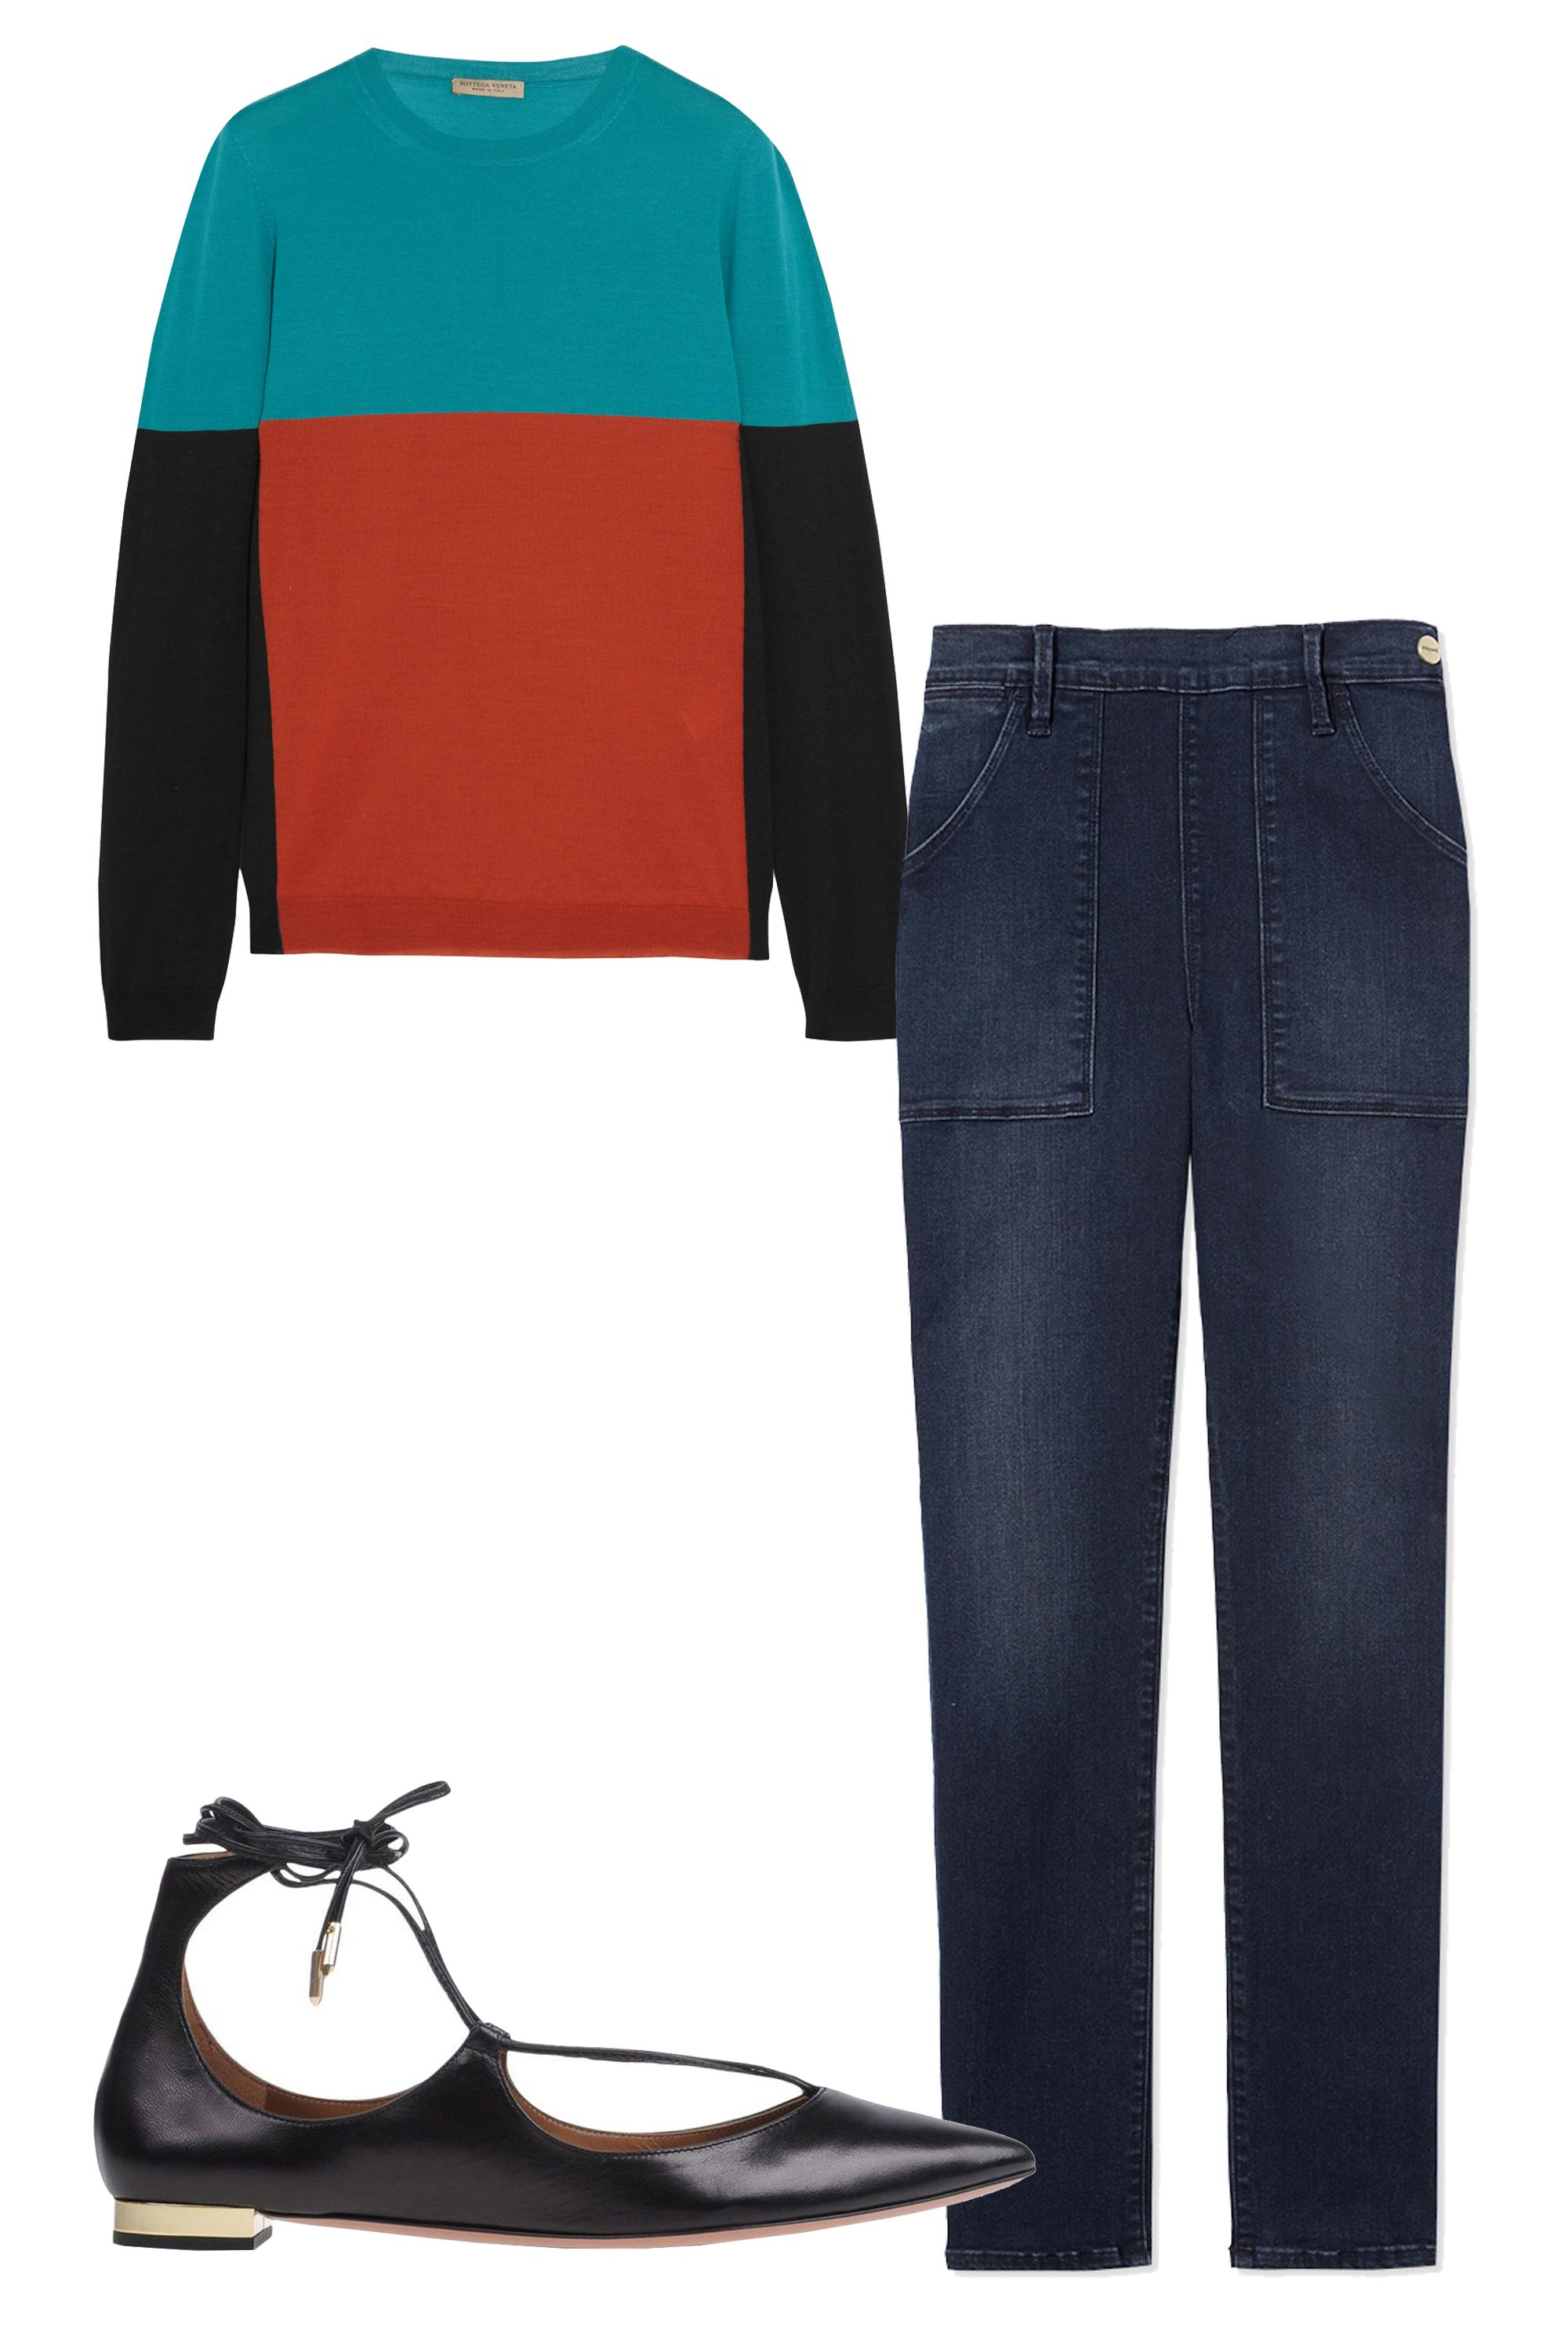 "<p>Opt for dark denim with a bit of stretch for maximum comfort and style, then pack a lightweight cozy sweater and a chic pair of flats. Bonus: you can repeat this look for brunch. <em>Bottega Veneta Color-Block Merino Wool Sweater, $1,100,<strong> </strong><a href=""https://www.net-a-porter.com/us/en/product/637834"" target=""_blank""><strong>netaporter.com</strong></a>&#x3B; <em>Frame Le Skinny Francoise Jeans, $239, <a href=""https://shop.harpersbazaar.com/designers/f/frame/le-skinny-de-francoise-7847.html"" target=""_blank""><strong>shopBAZAAR.com</strong></a>&#x3B; </em></em><em>Aquazzura Black Tie Ballerina Flat, $675, <a href=""https://shop.harpersBAZAAR.com/designers/a/aquazzura/black-ballerina-flat-7433.html"" target=""_blank""><strong>shopBAZAAR.com</strong></a>.</em></p><p><em></em><br></p><p><br></p><p><br></p>"